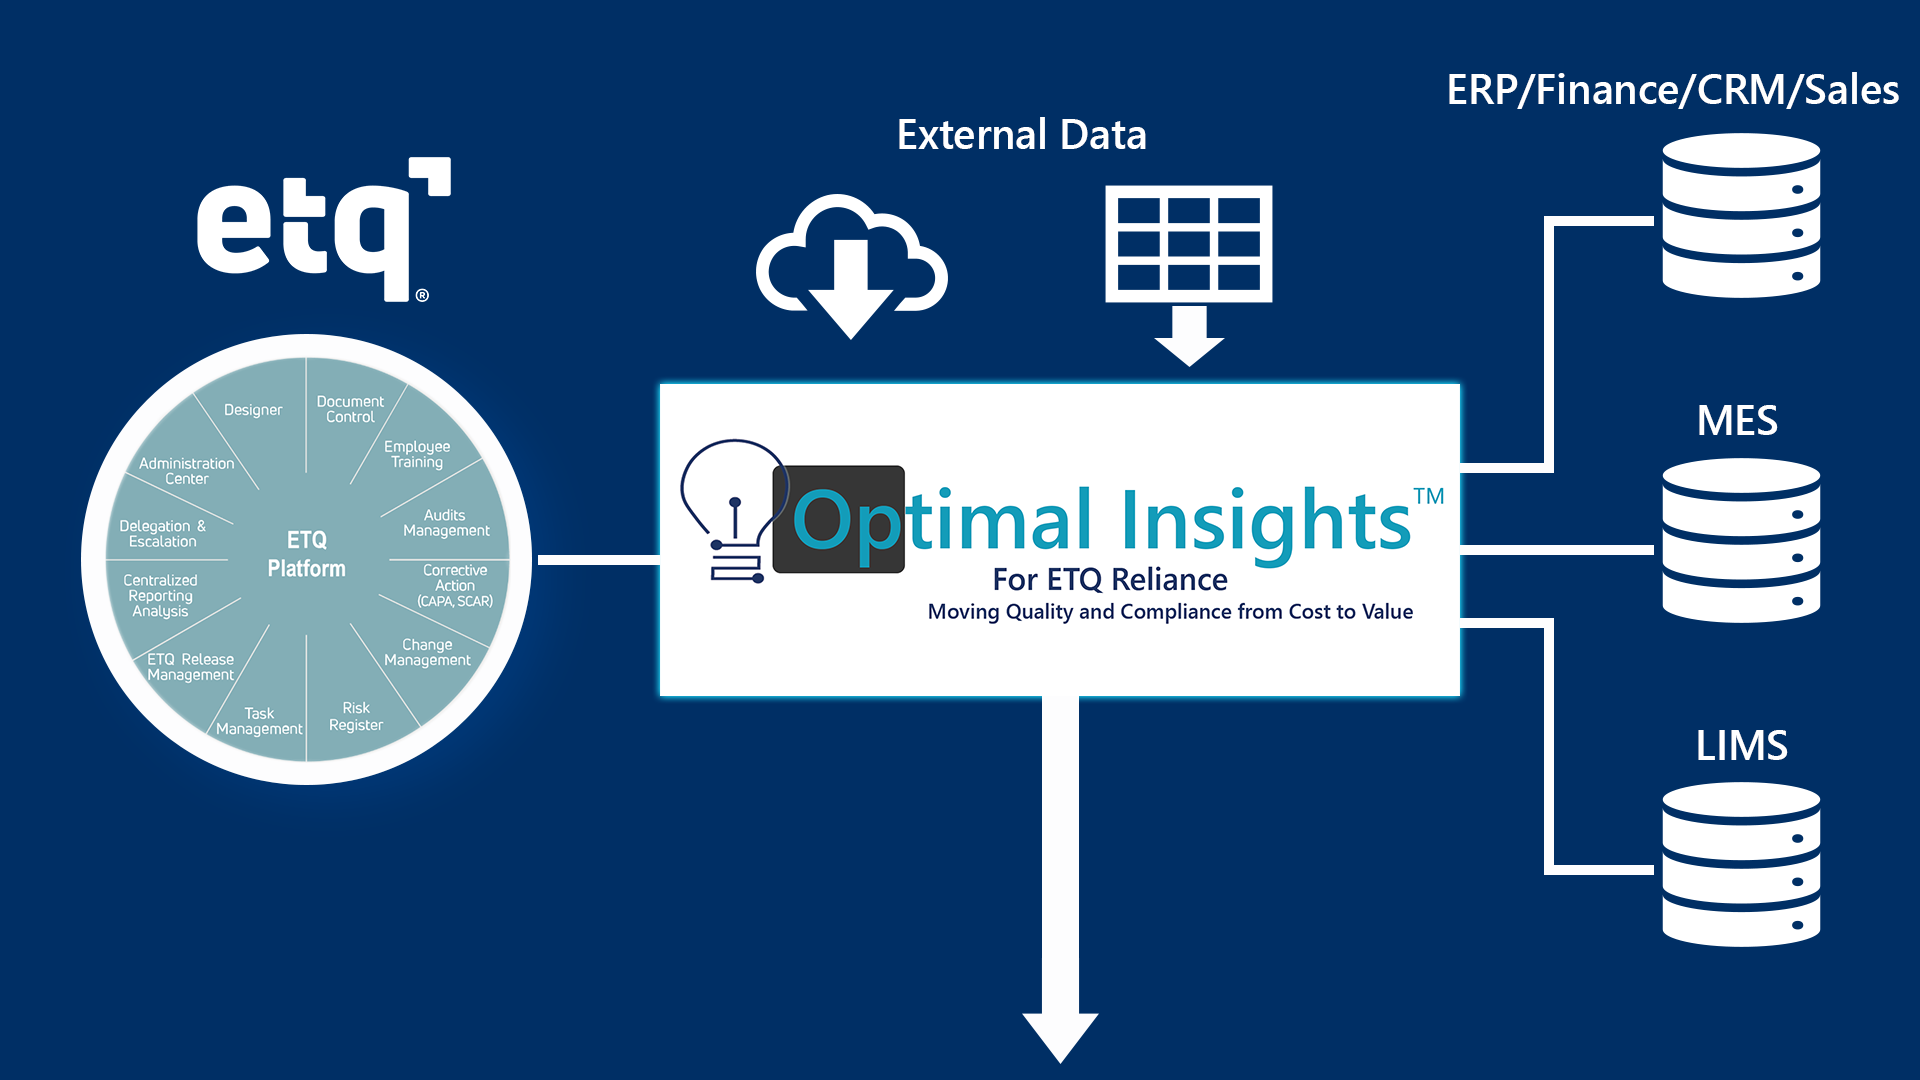 Optimal Insights Environment